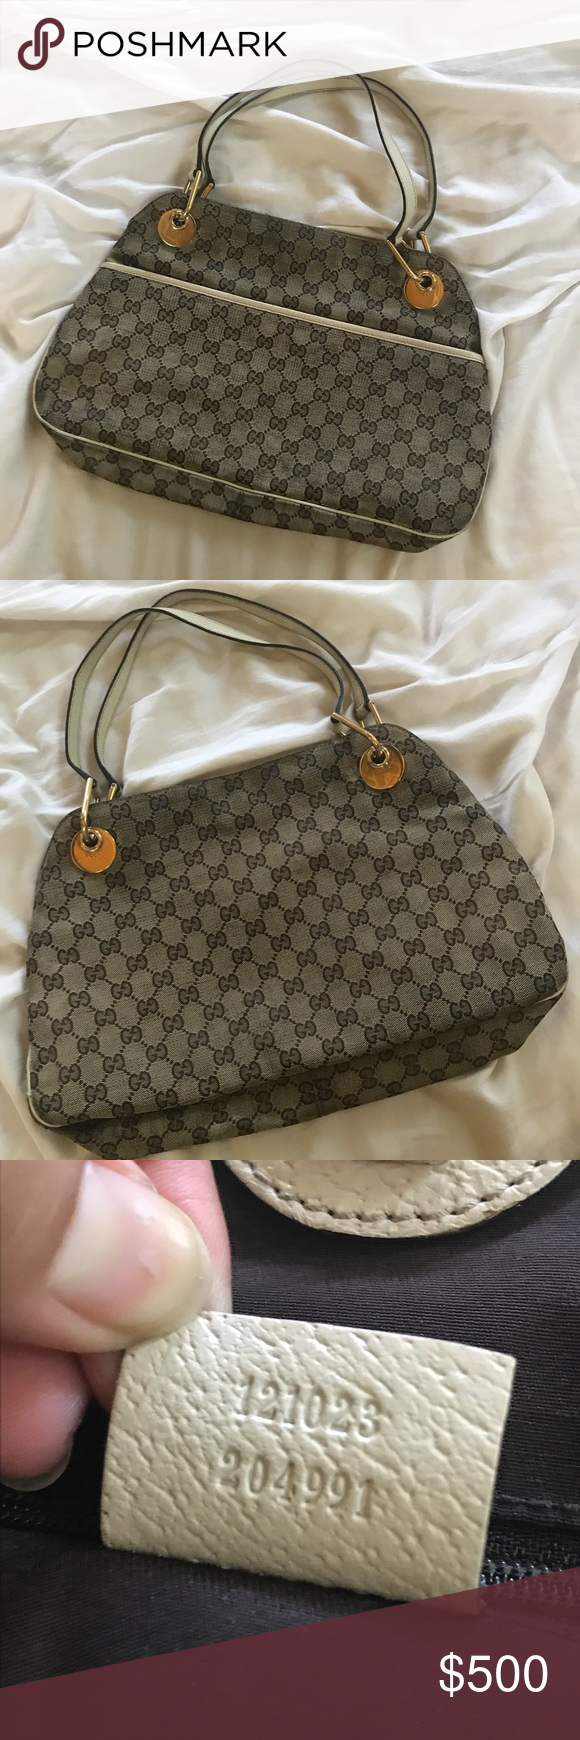 46a417d348b2 ✨Gucci Monogram Medium Eclipse Canvas Tote✨ This beautiful Gucci bag is in  excellent condition